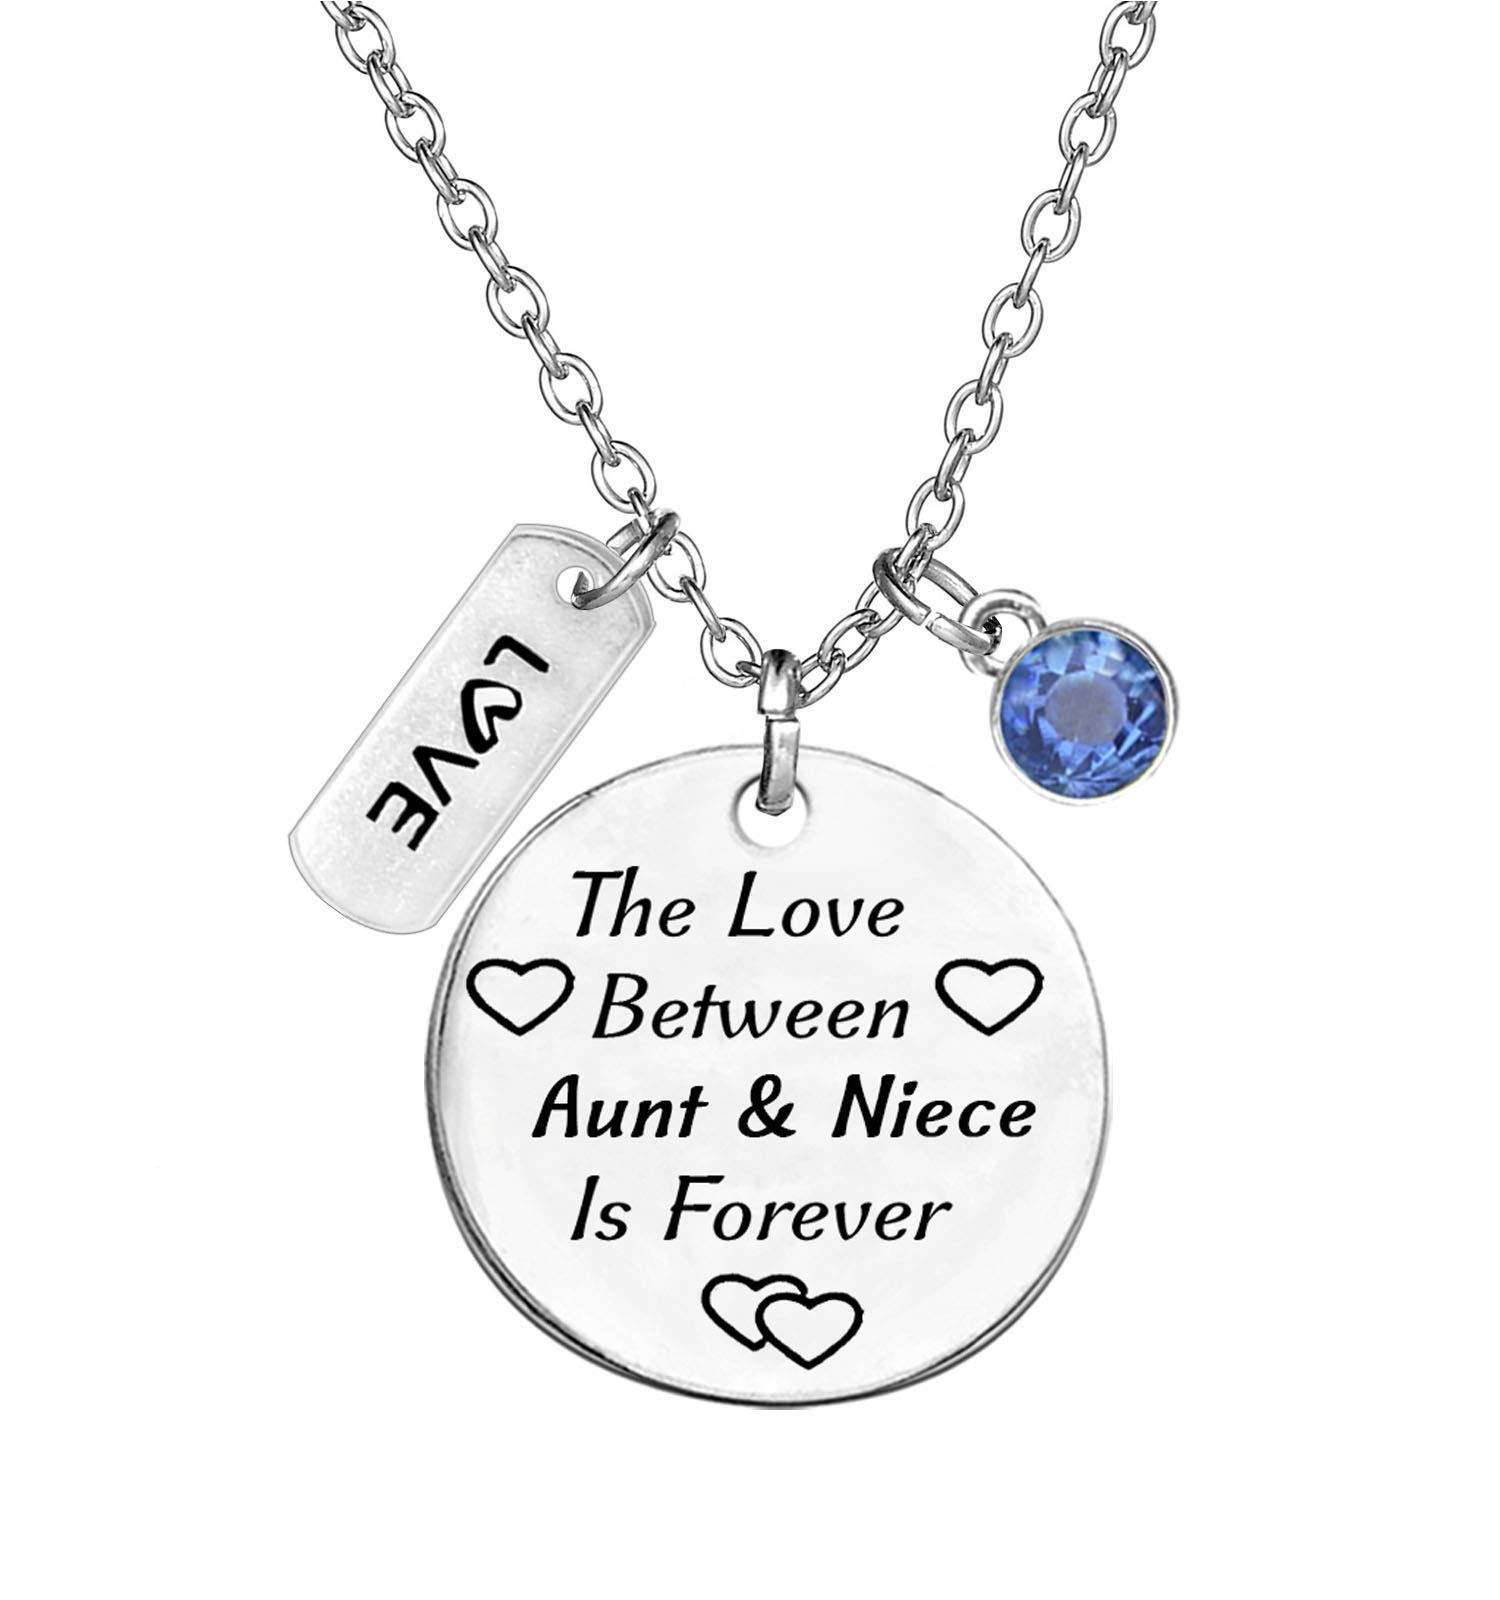 TISDA Birthstone Crystals Necklace,The Love between Aunt and Niece is Forever Necklace Family Jewelry Christmas Gift (December)